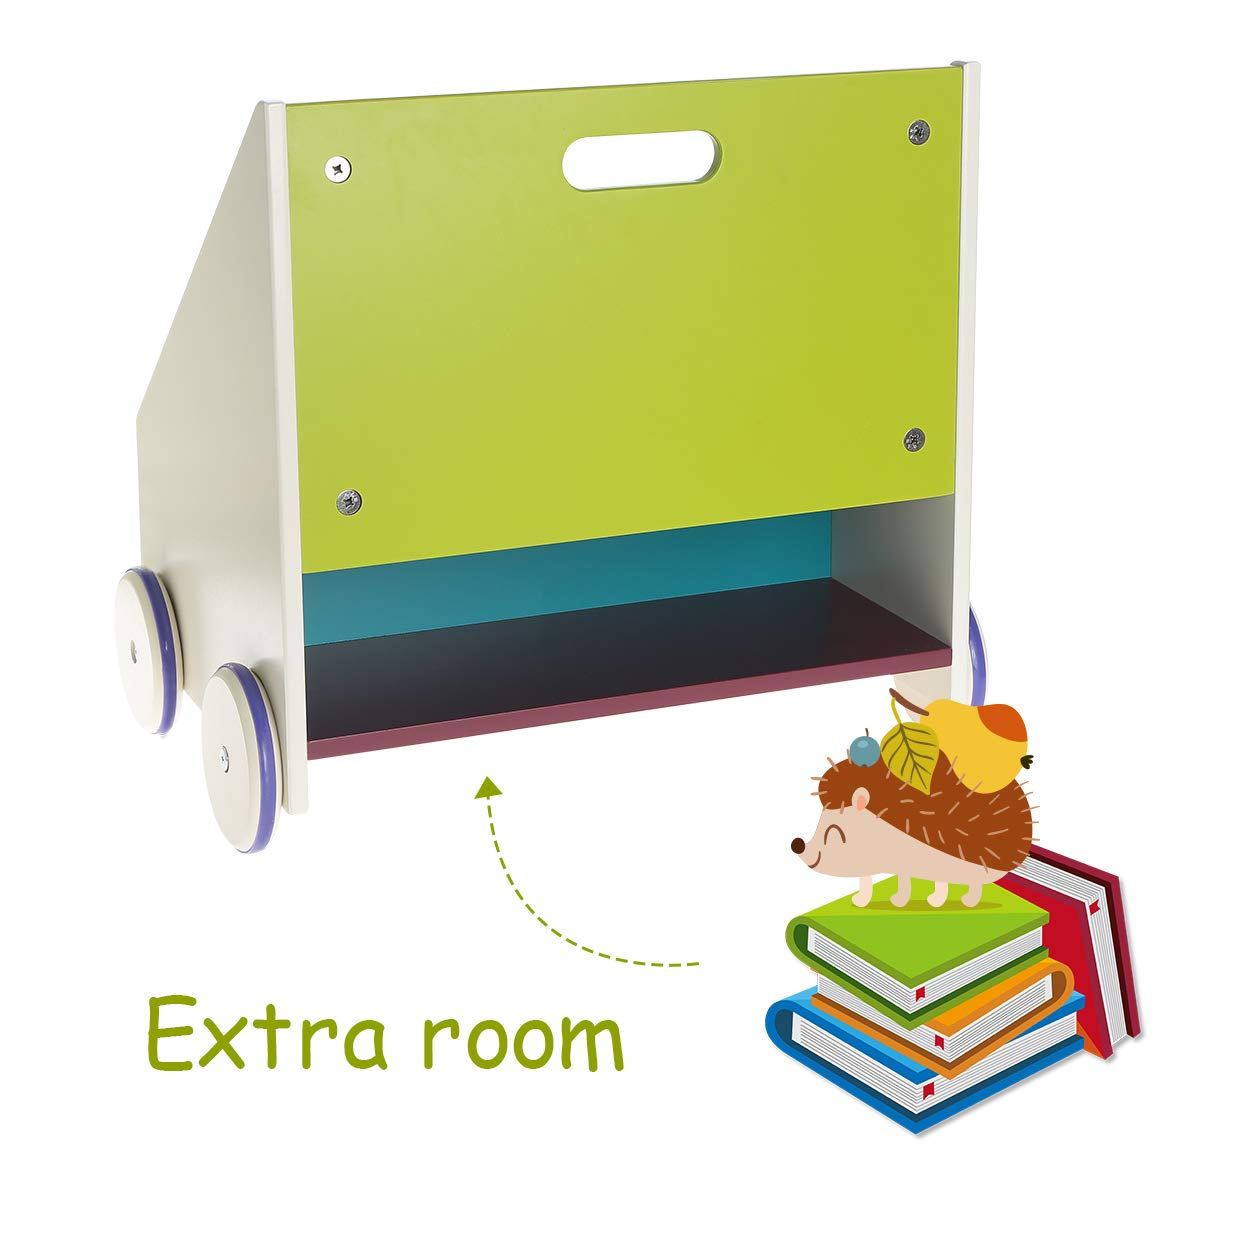 Library Furniture Book Storage//Shelf Trapeziodal Shape hessie Little Toddler Kids Portable Wooden Bookcase//Bookshelf on Wheels Green Hedgehog